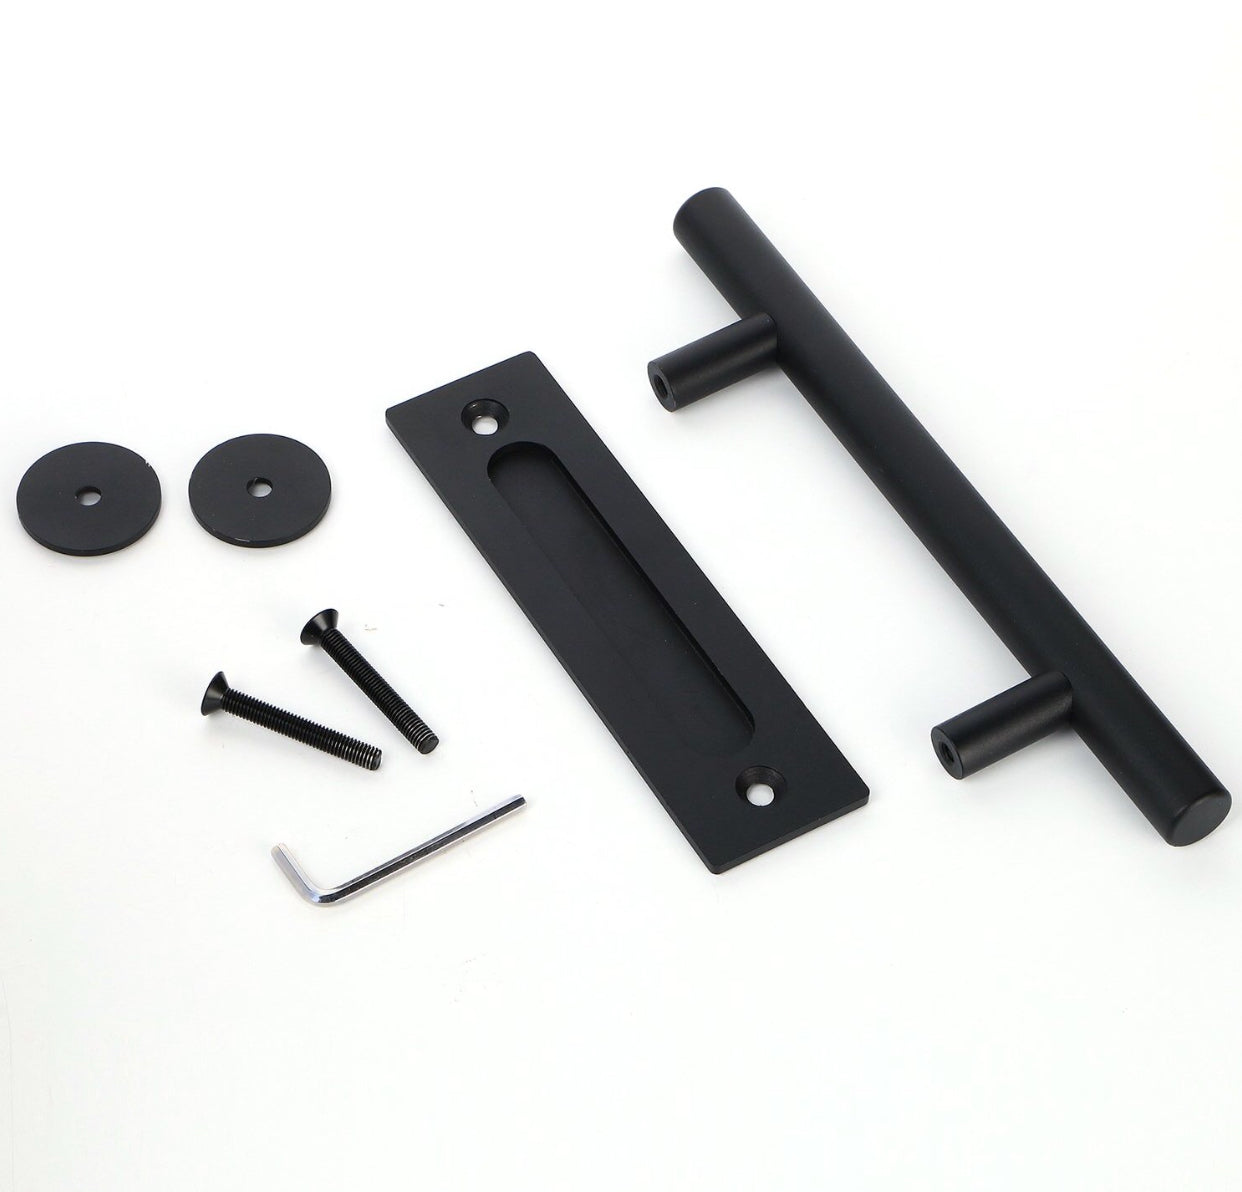 Black Cylinder Door Handle